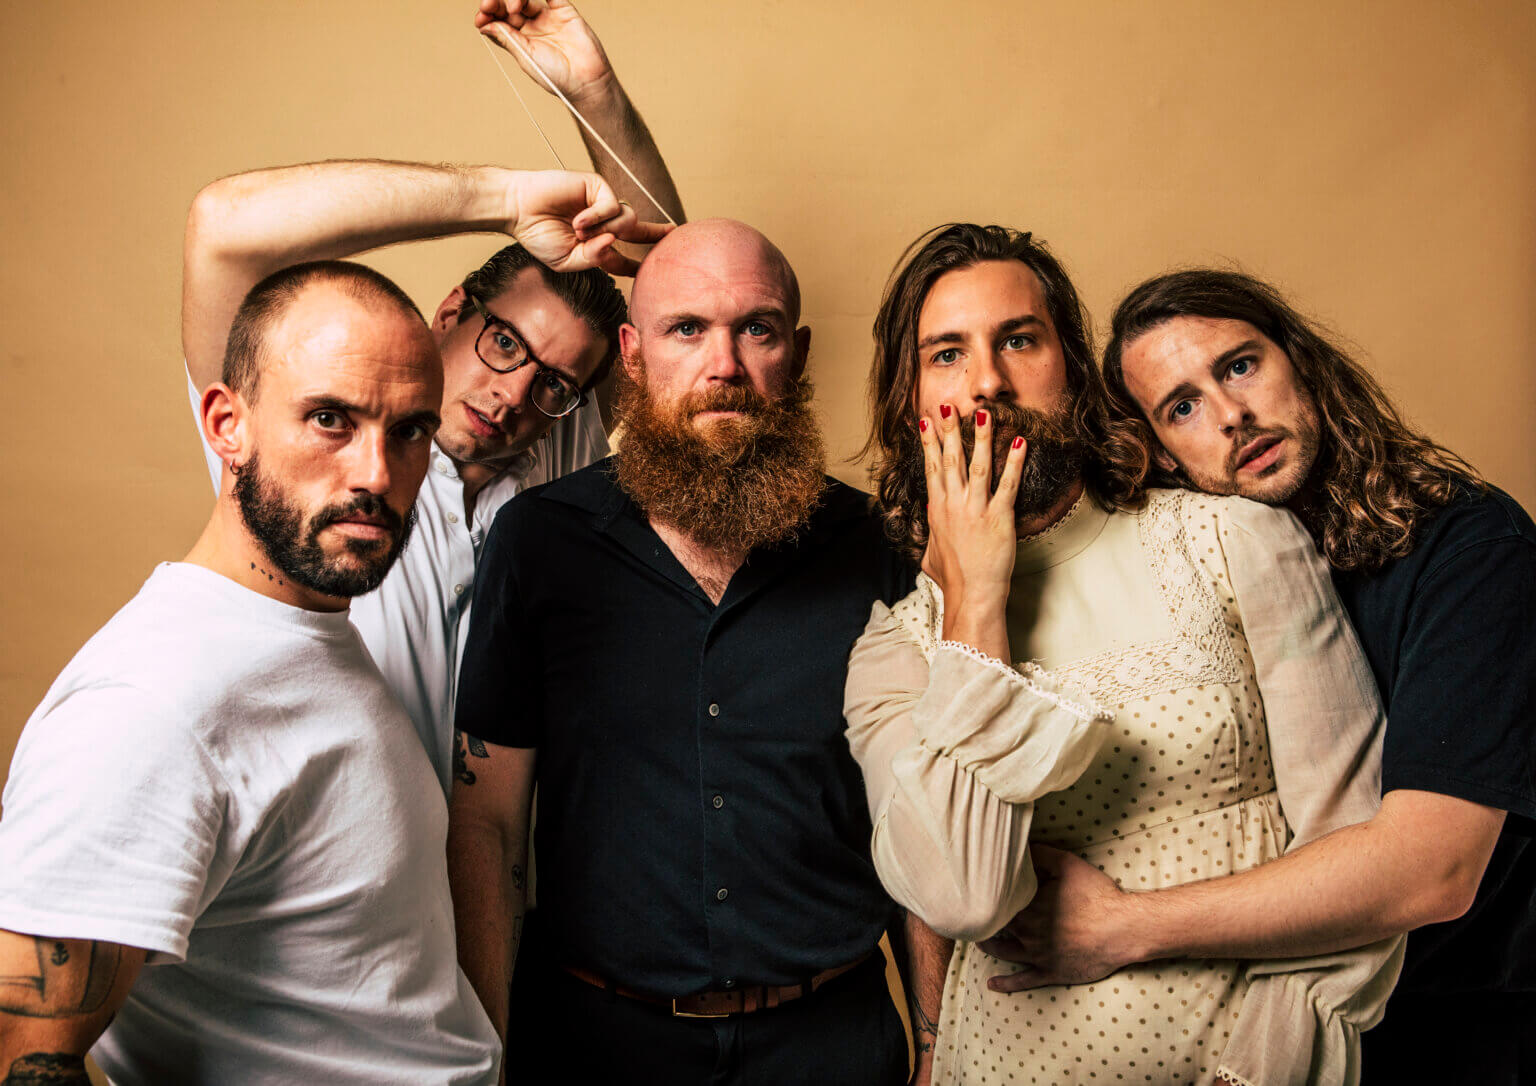 IDLES have announced CRAWLER, their forthcoming release will drop on November 12, 2021 via Partisan Records